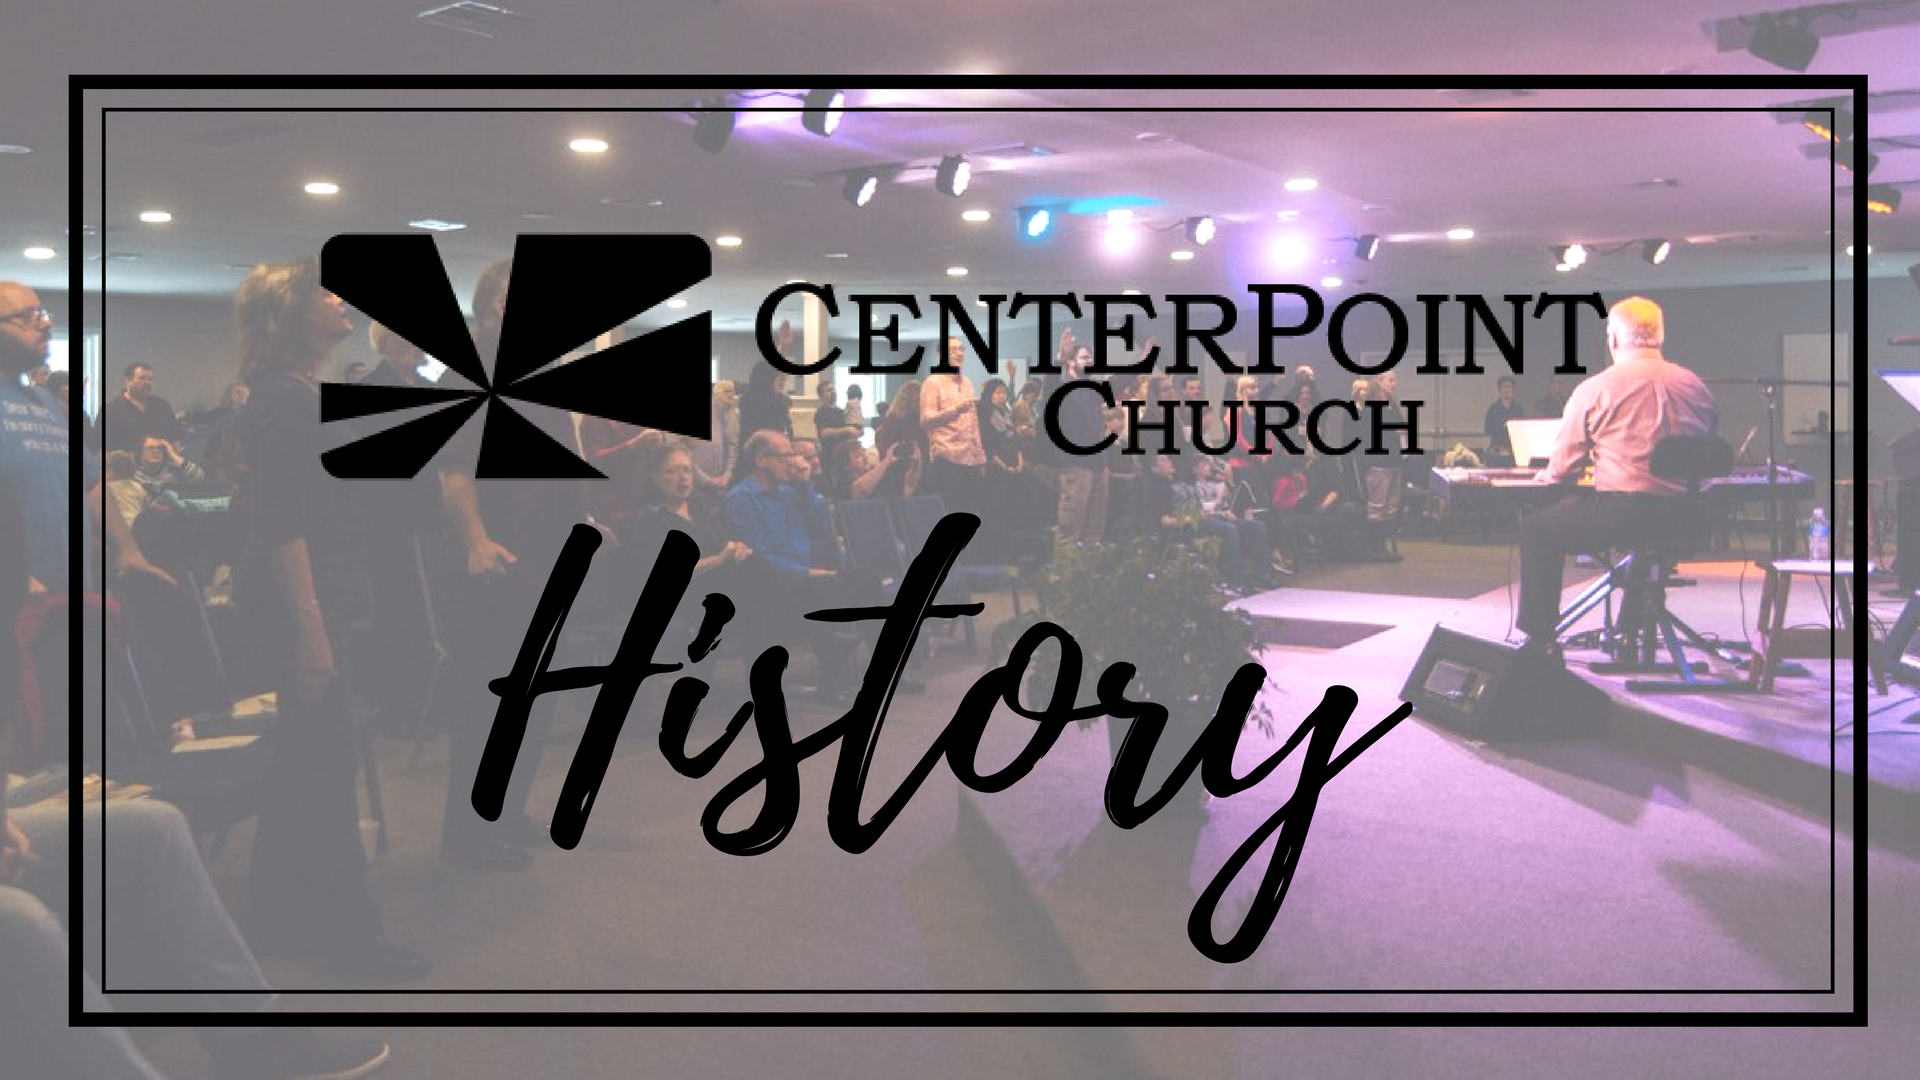 CenterPoint Church History